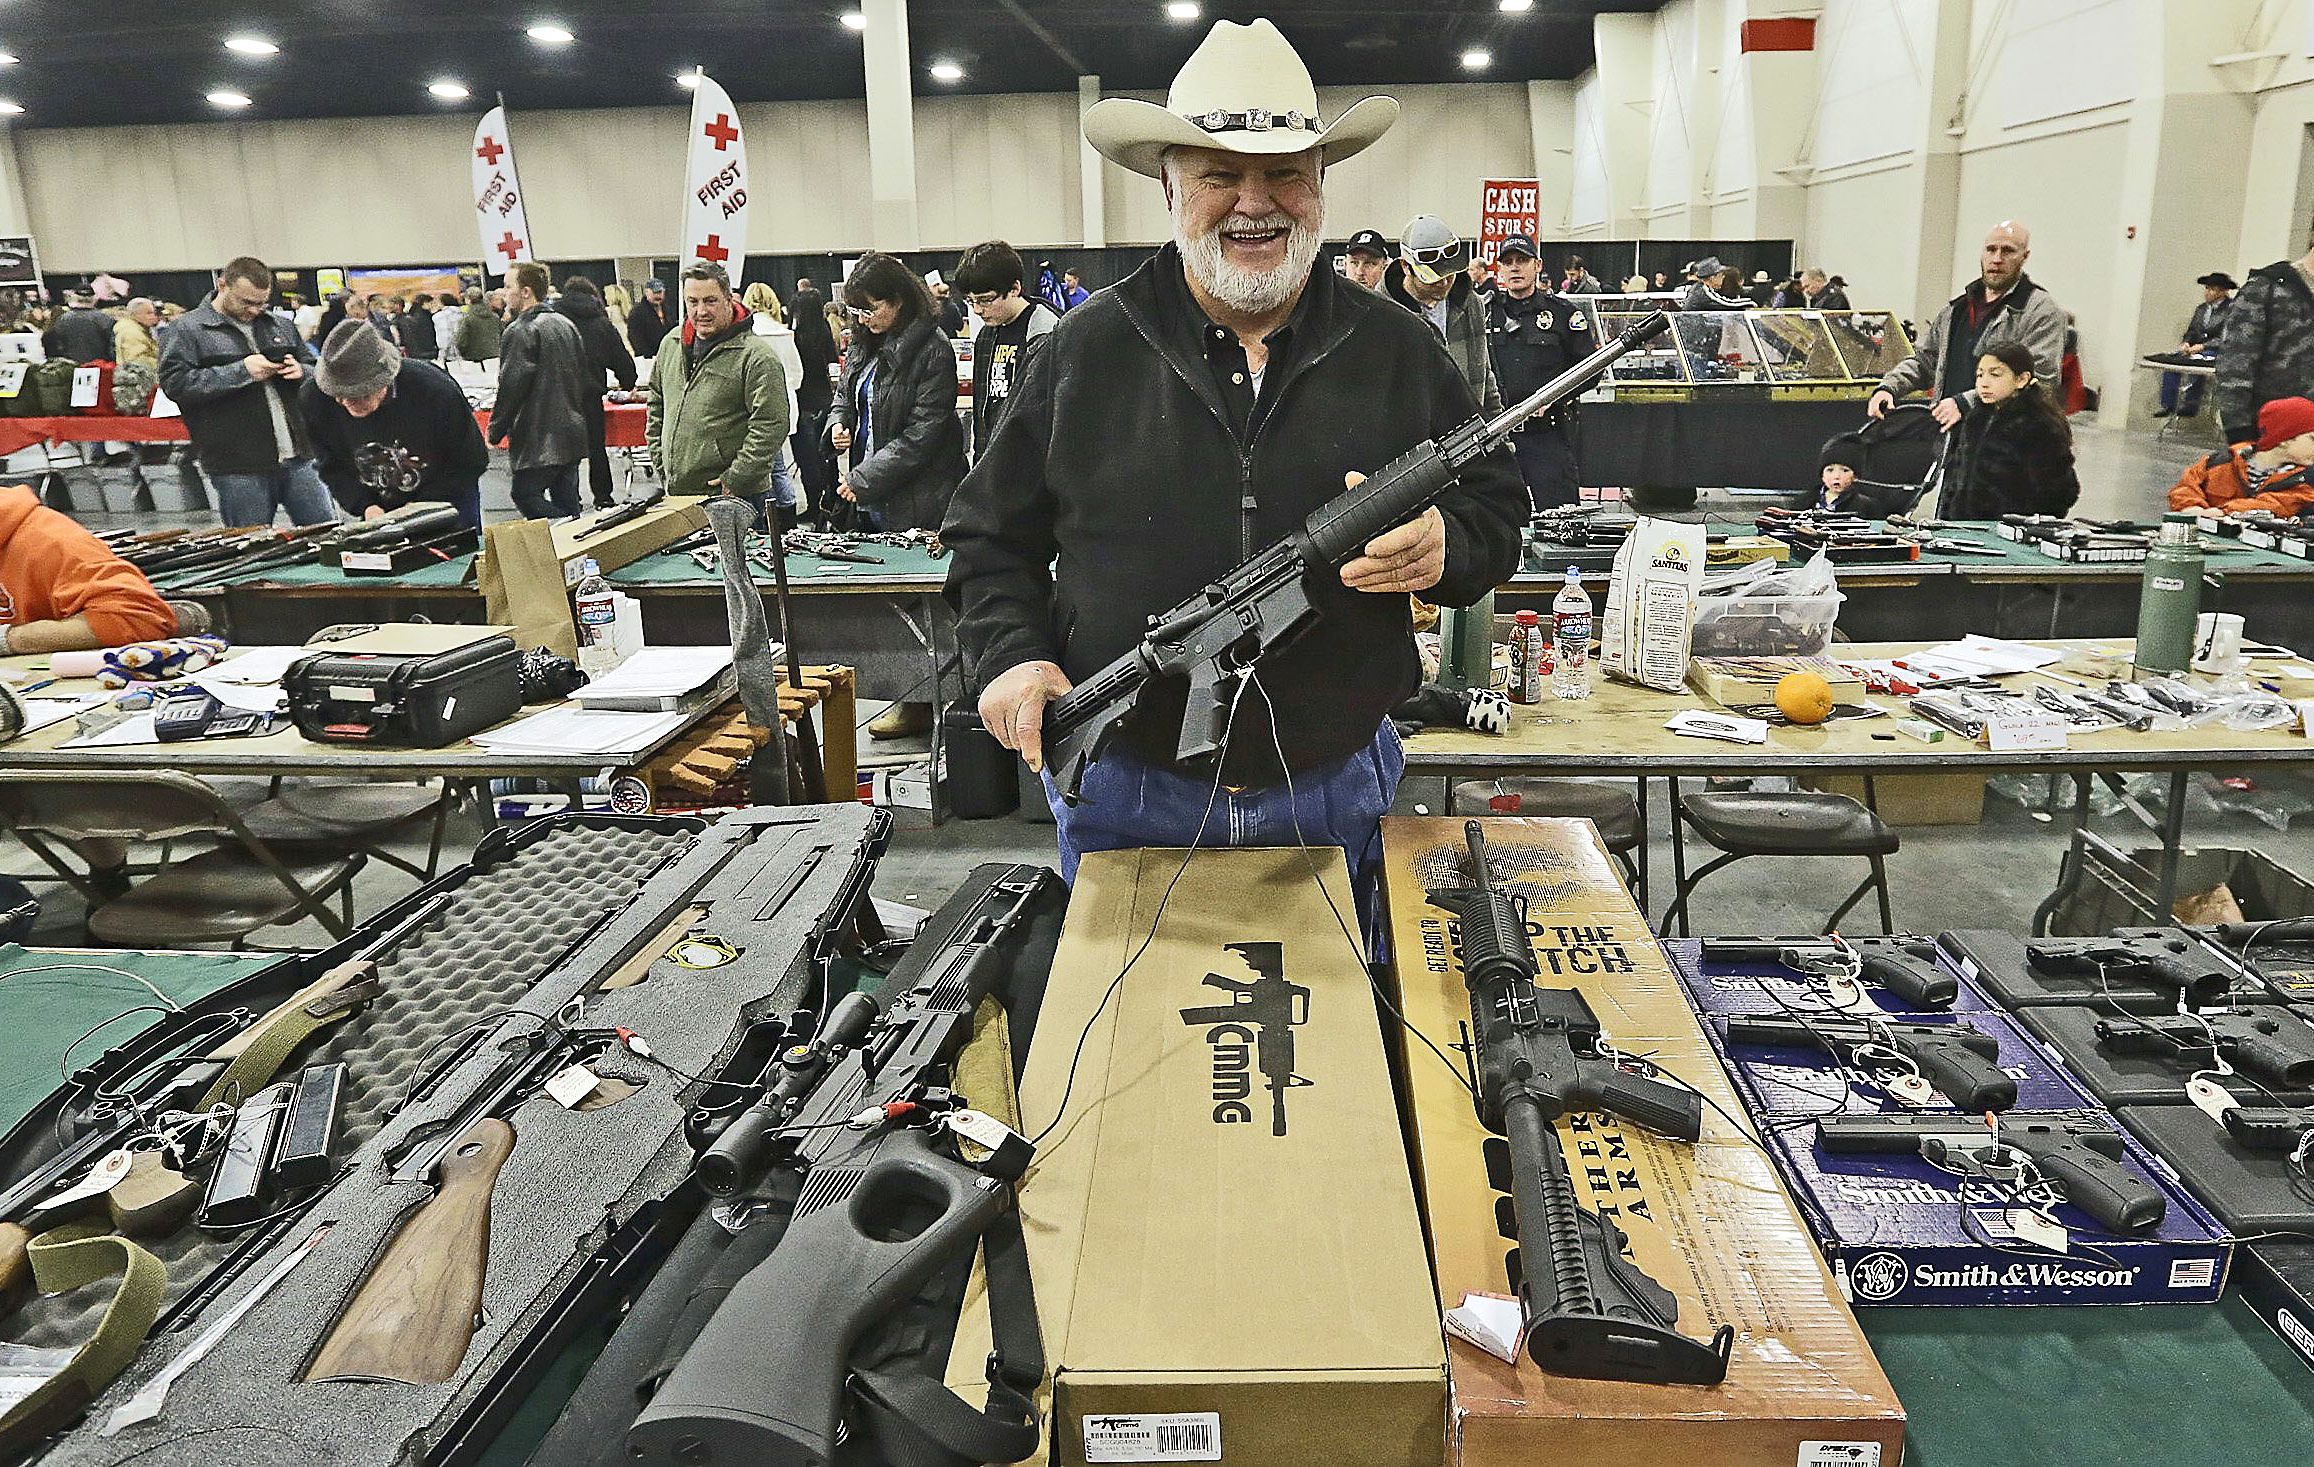 I am reluctant to buy a gun from a gun shop, should I be?